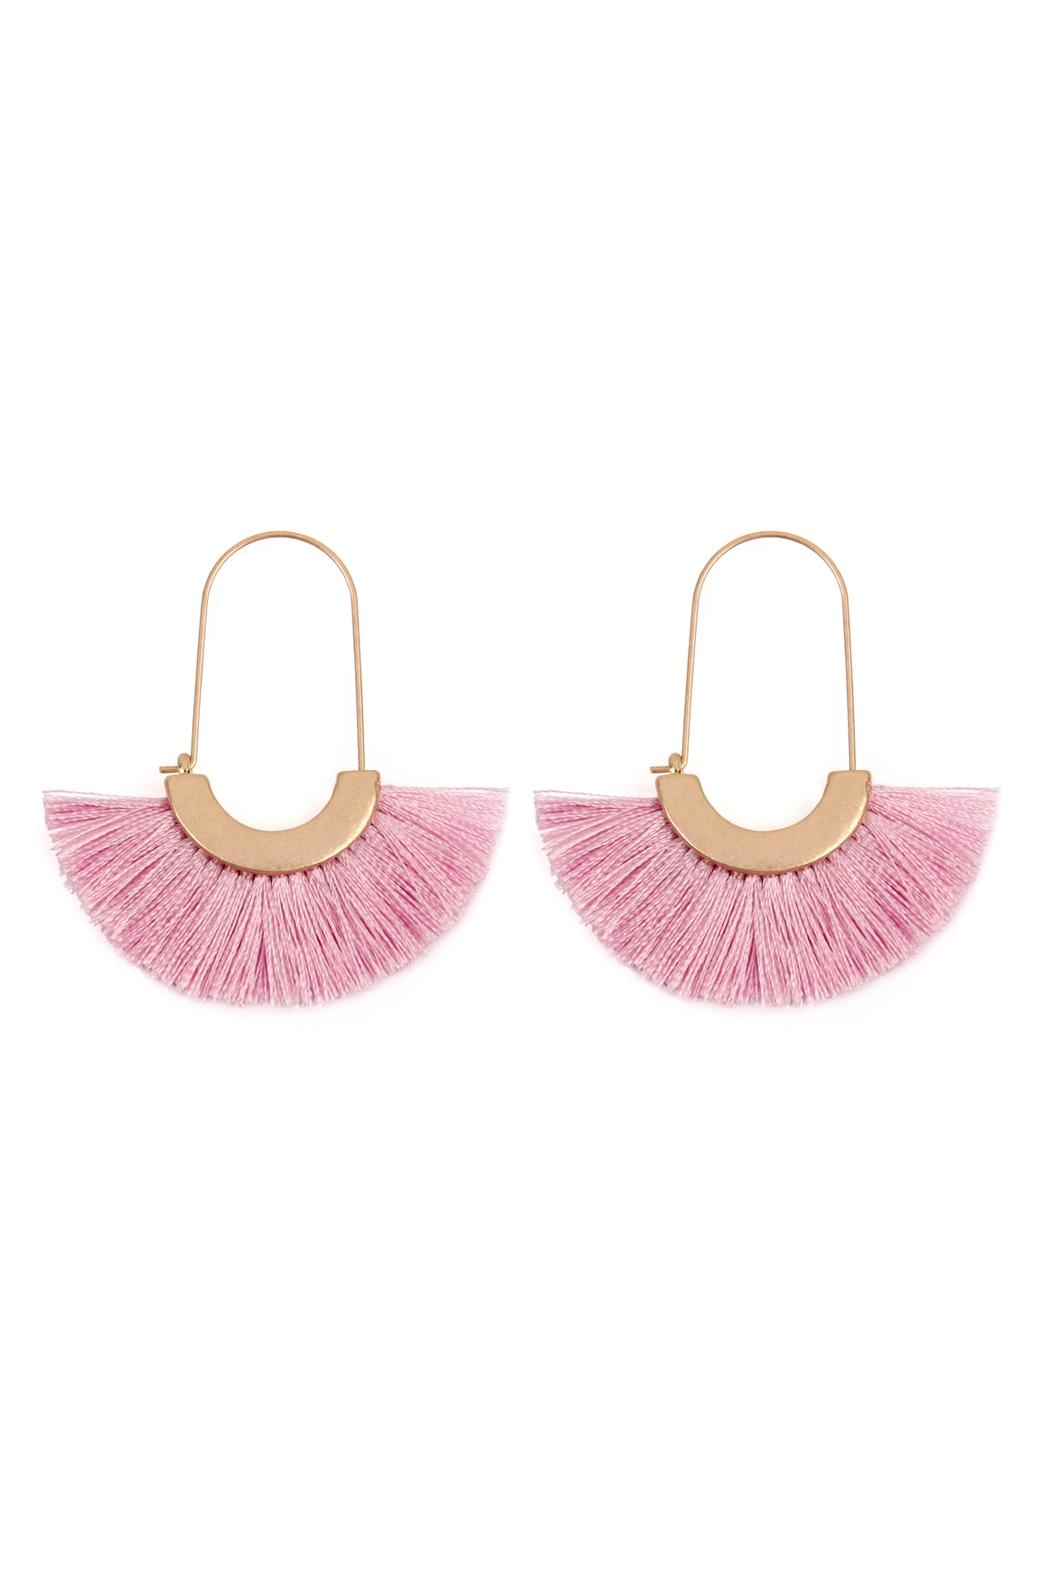 Riah Fashion Fringed Fan Shape-Earrings - Main Image